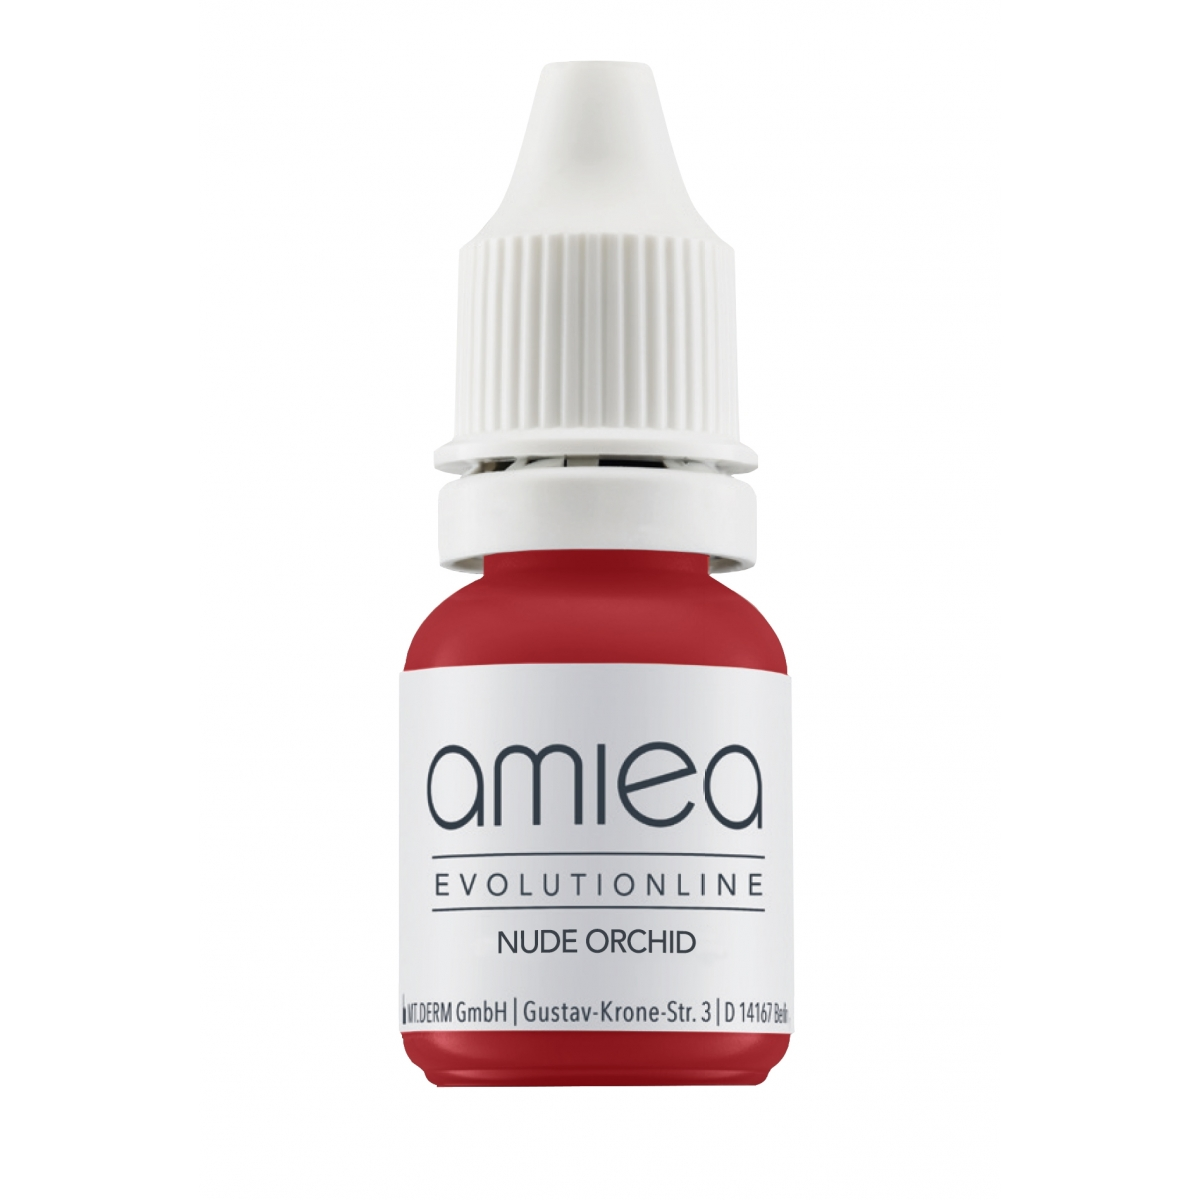 EVOLUTION LINE (5ml) - PIGMENT NUDE ORCHID EVOLUTIONLINE AMIEA (5 ml)